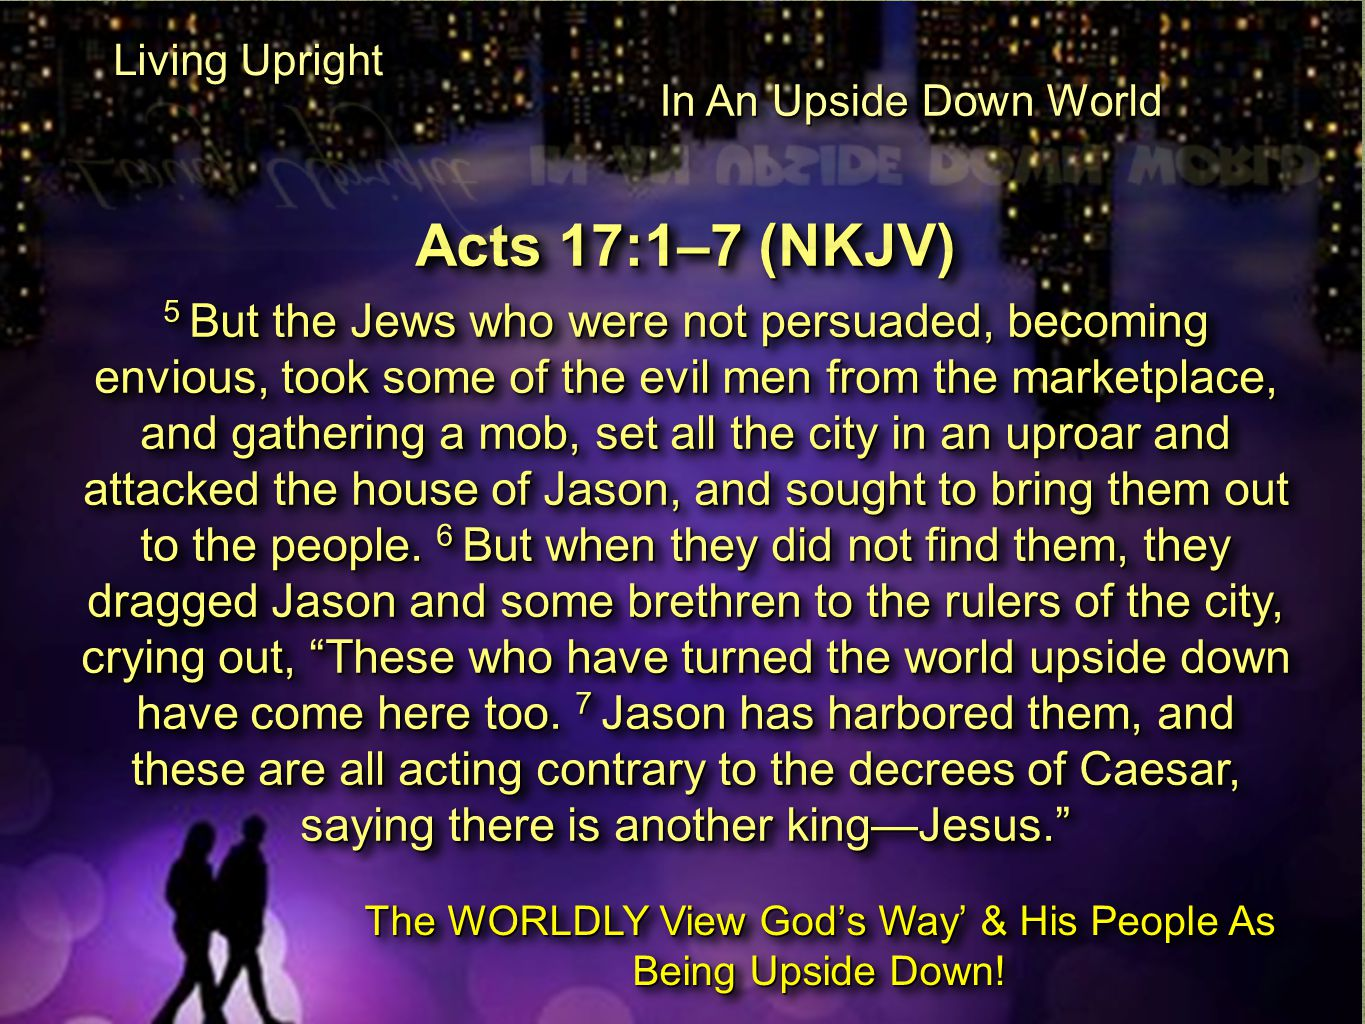 Acts 17:1–7 (NKJV) 5 But the Jews who were not persuaded, becoming envious, took some of the evil men from the marketplace, and gathering a mob, set all the city in an uproar and attacked the house of Jason, and sought to bring them out to the people.